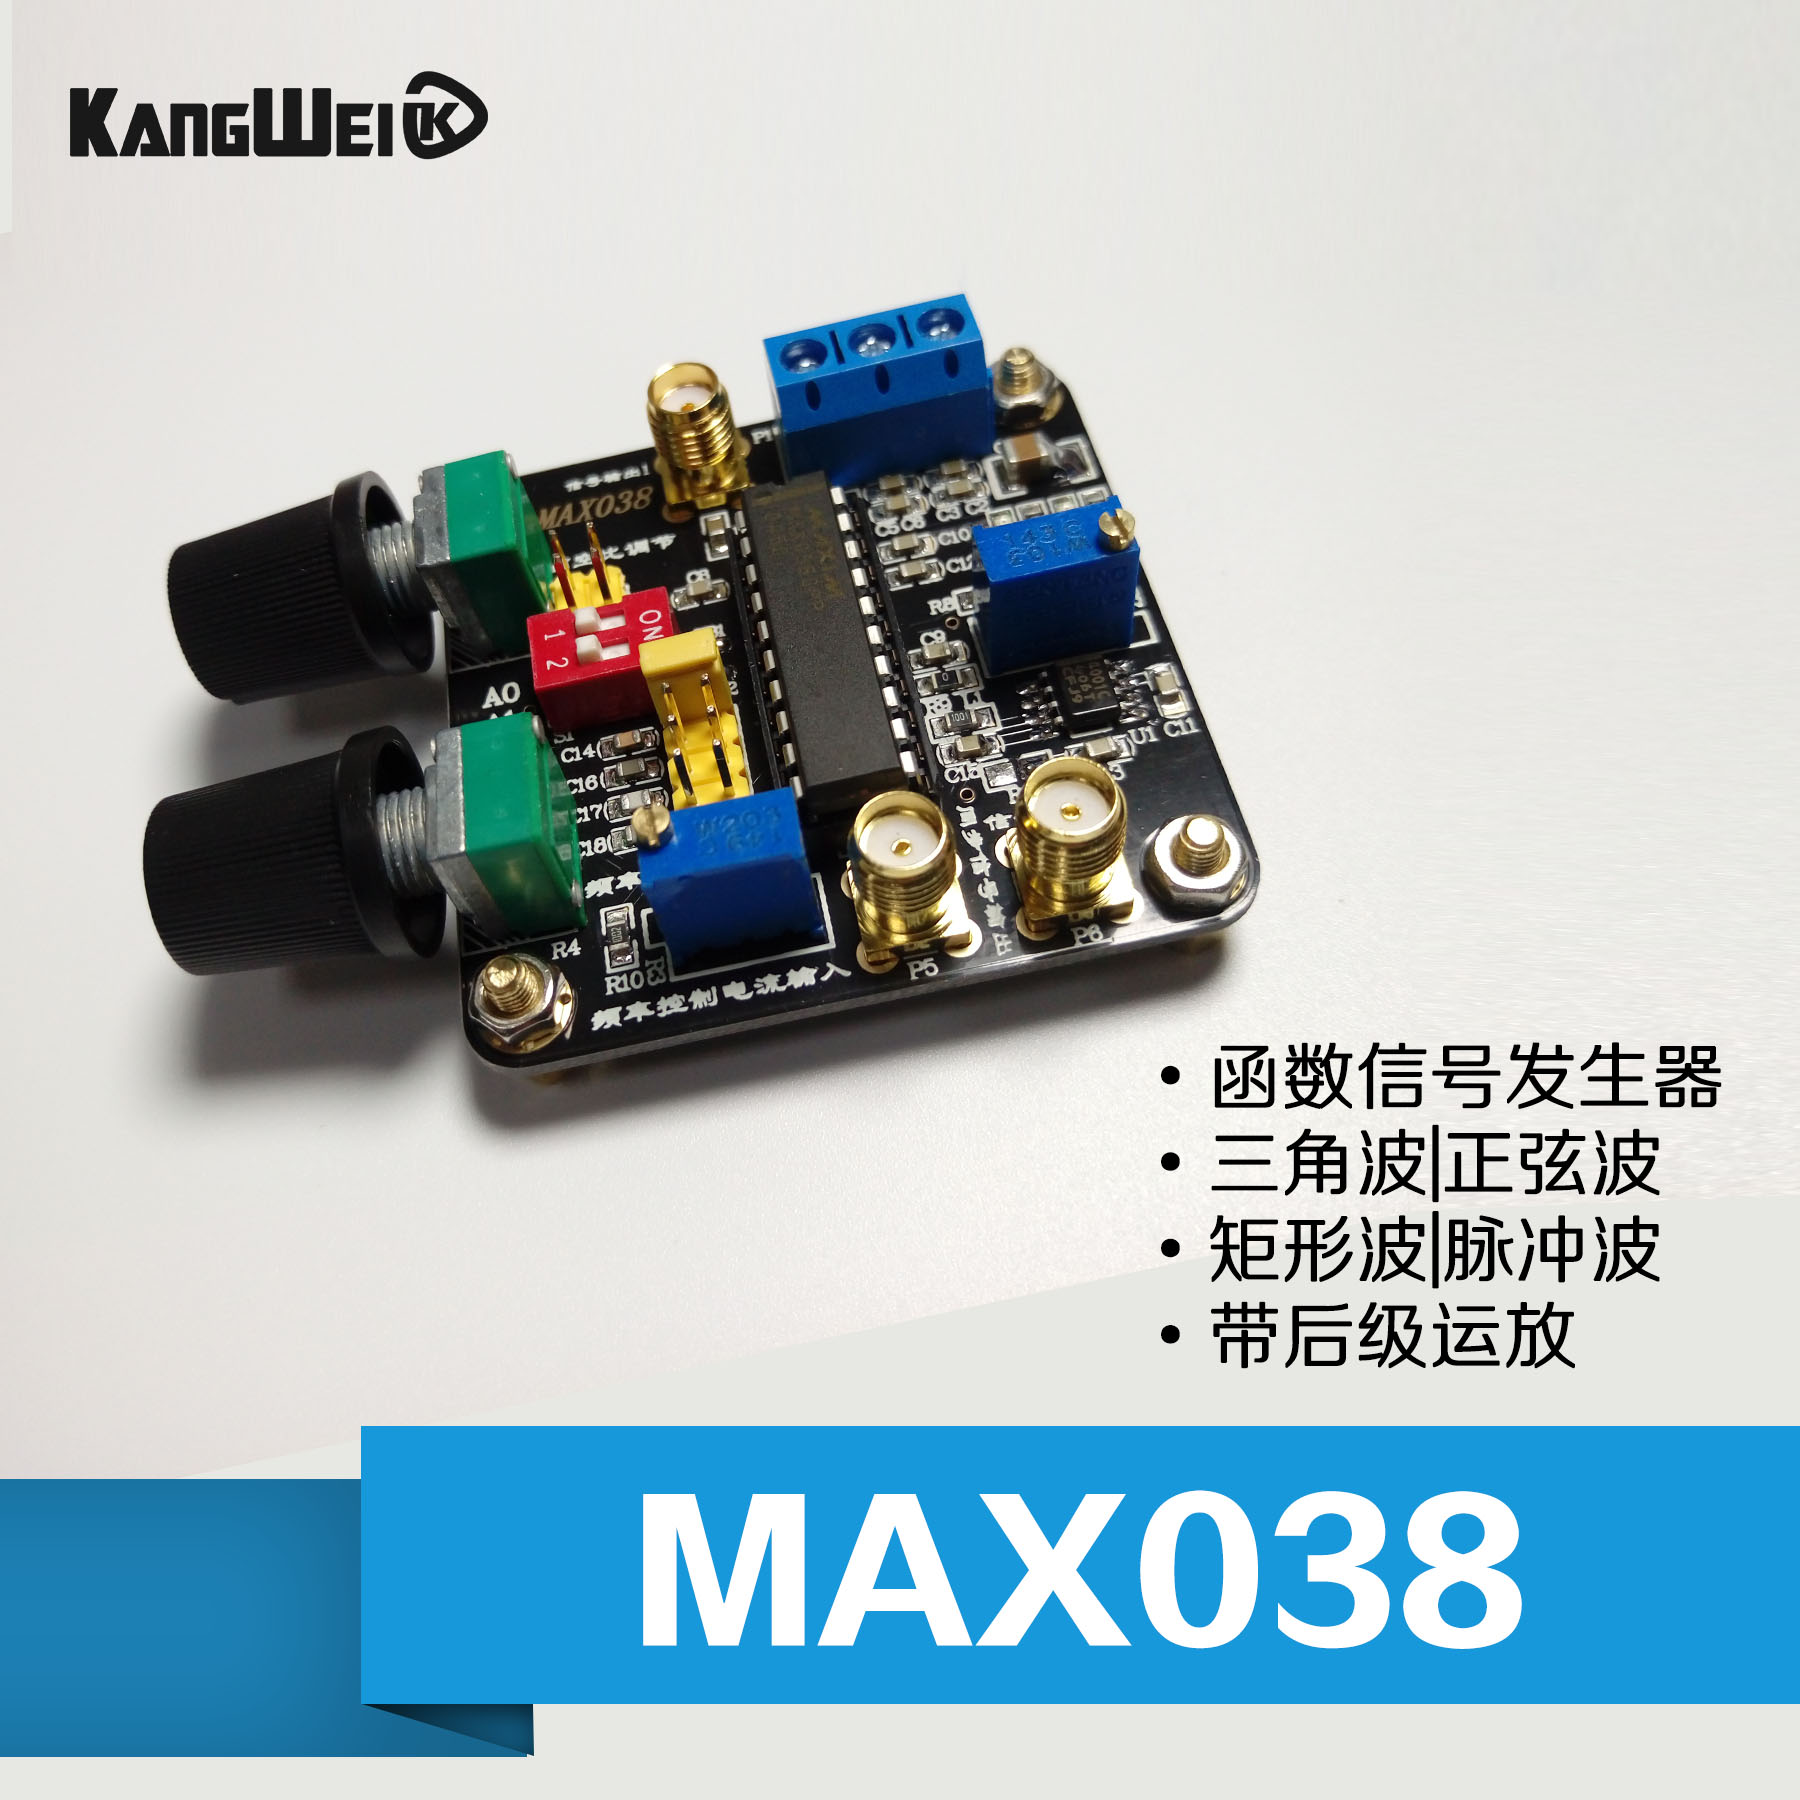 MAX038 Function, Signal Generator Module, Triangle Wave, Sine Wave, Rectangle Wave, Pulse Wave catalog sun wave